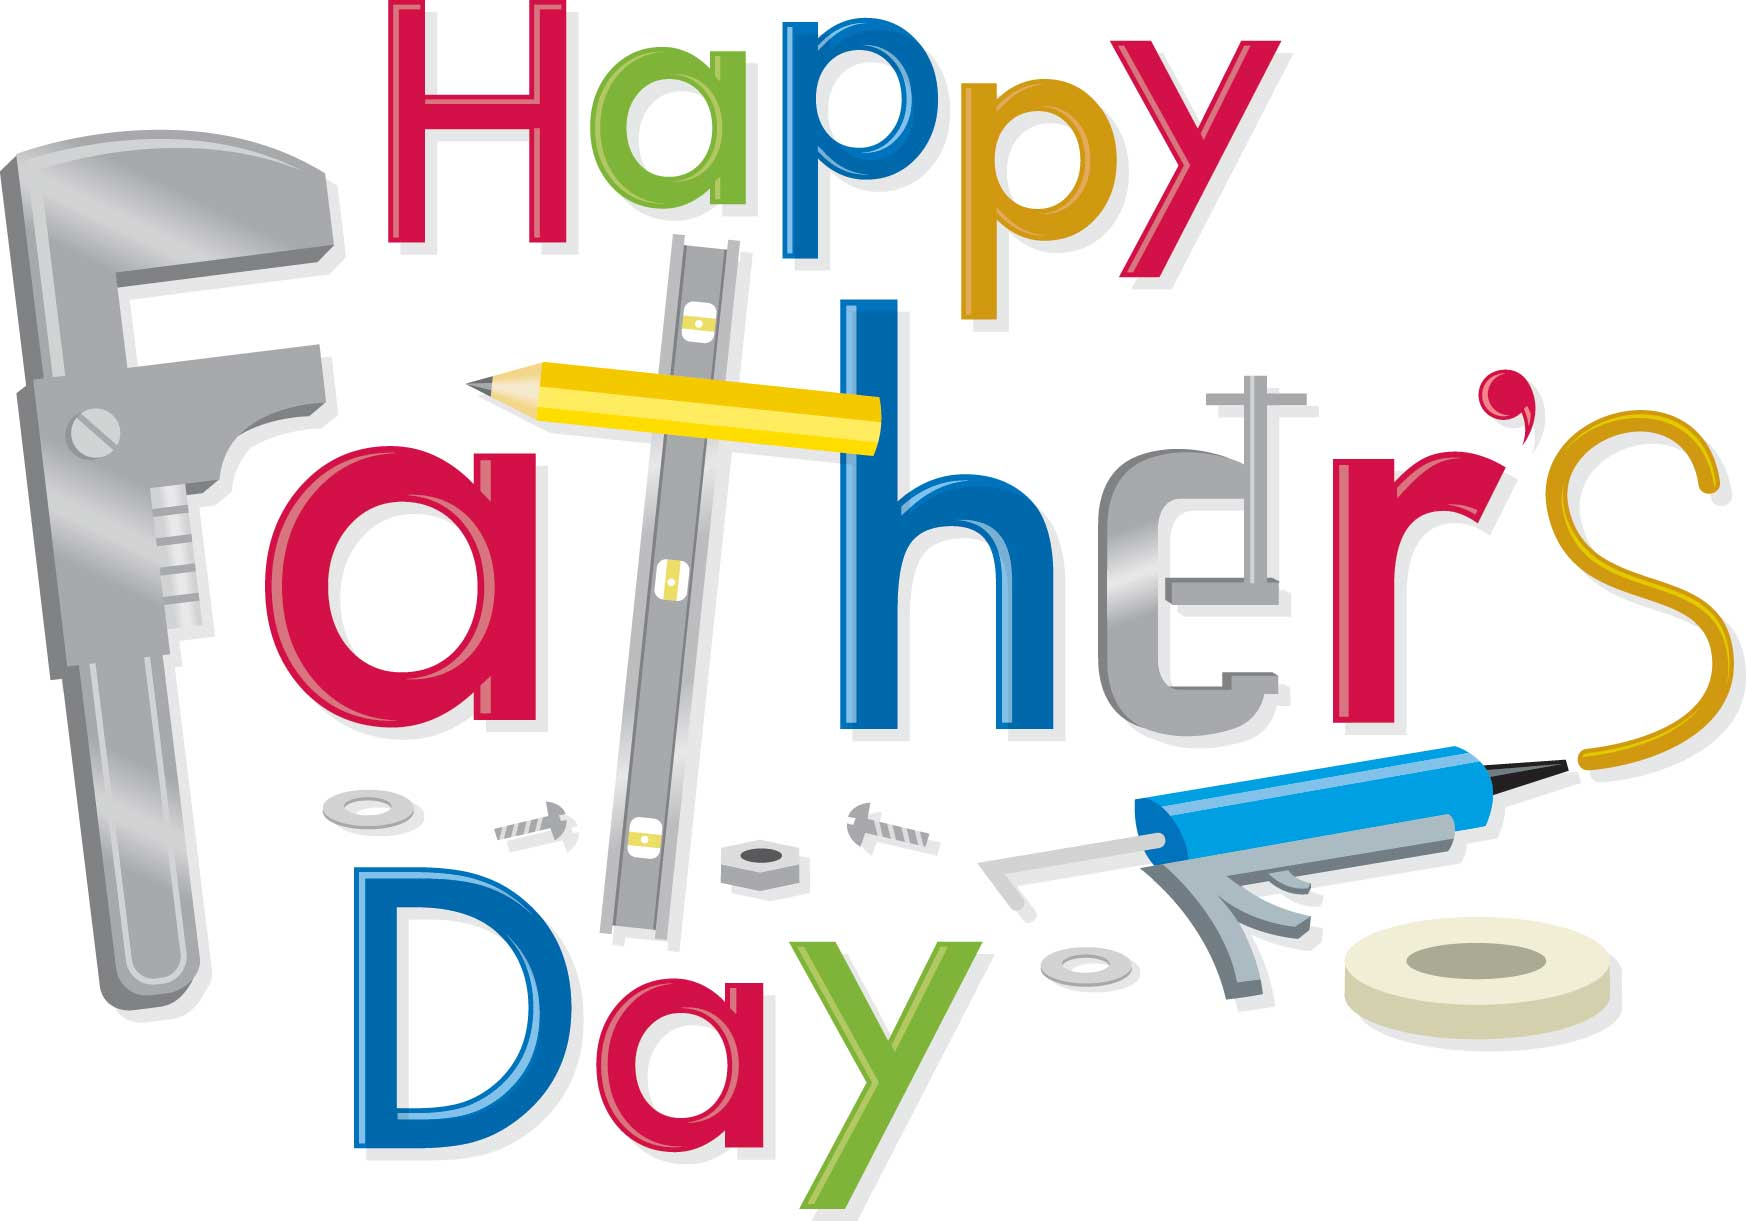 Day We Hope You Have A Special Day And Look Forward To Seeing You.